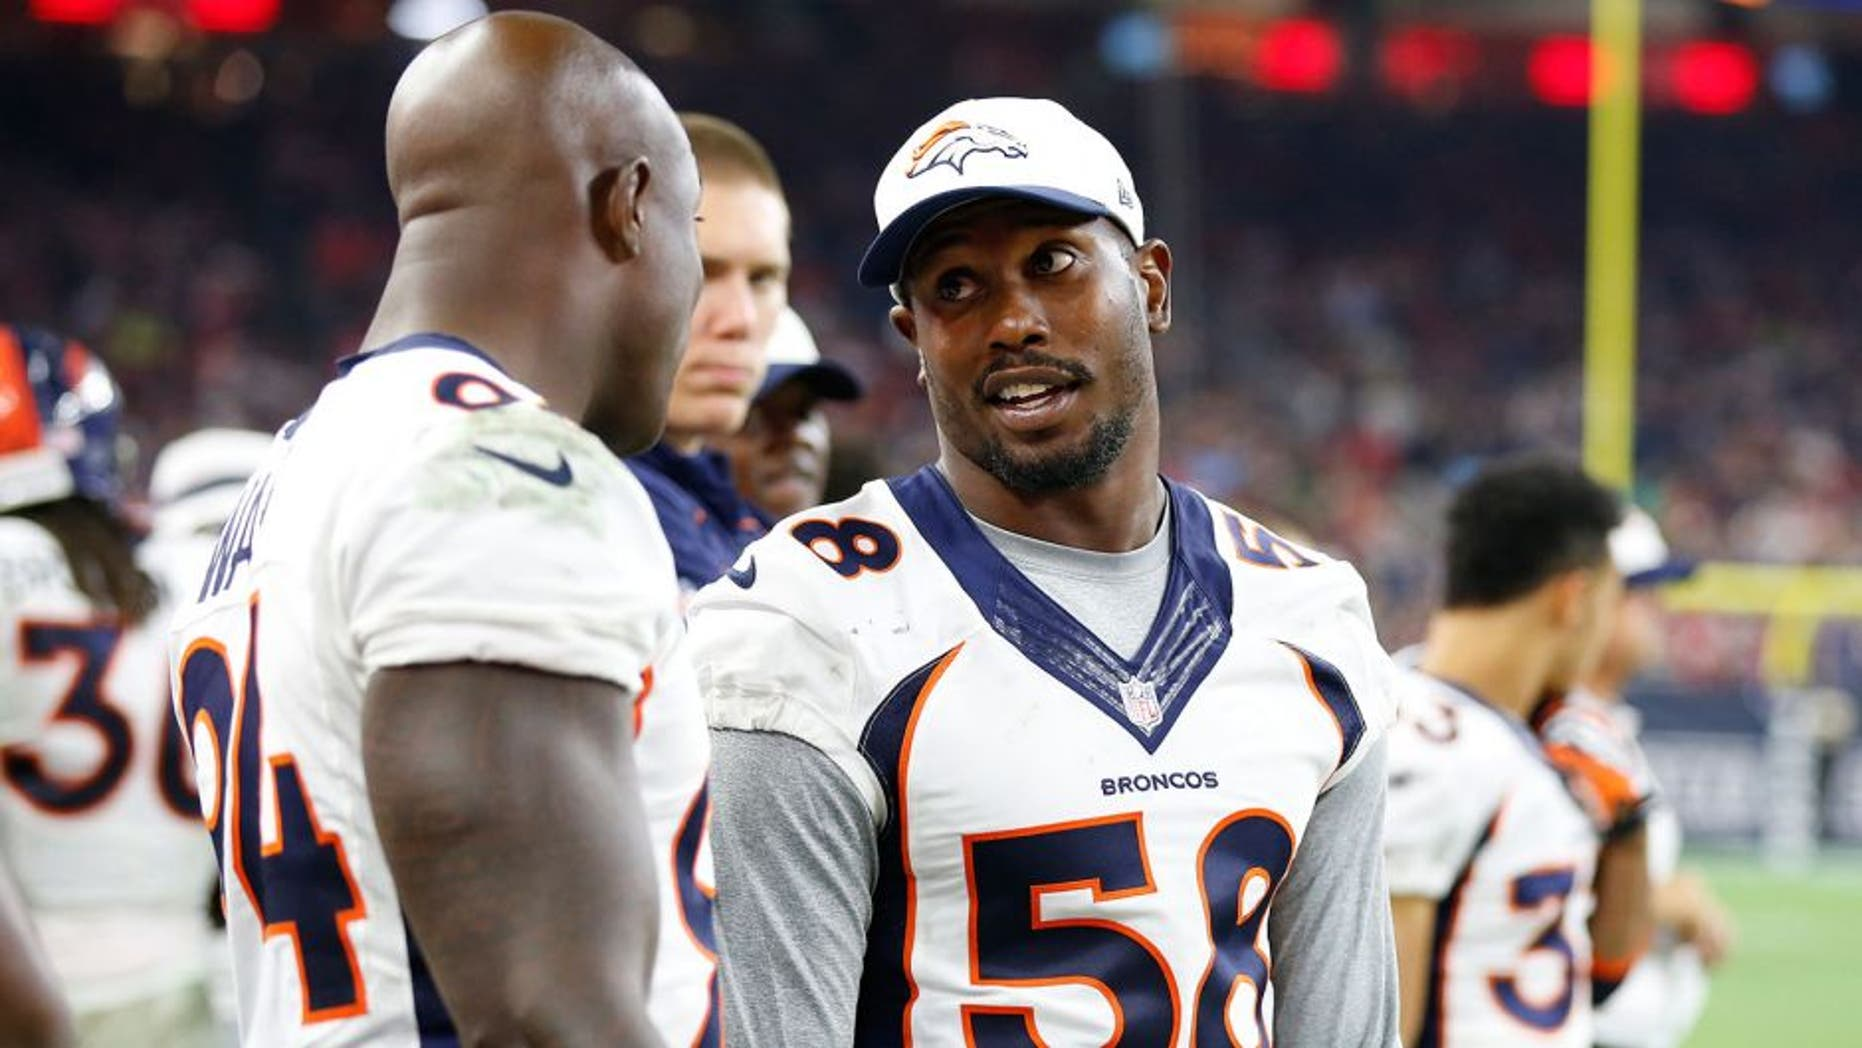 Aug 22, 2015; Houston, TX, USA; Denver Broncos linebacker Von Miller (58) talks with defensive end DeMarcus Ware (94) on the sidelines during the game against the Houston Texans at NRG Stadium. Mandatory Credit: Matthew Emmons-USA TODAY Sports